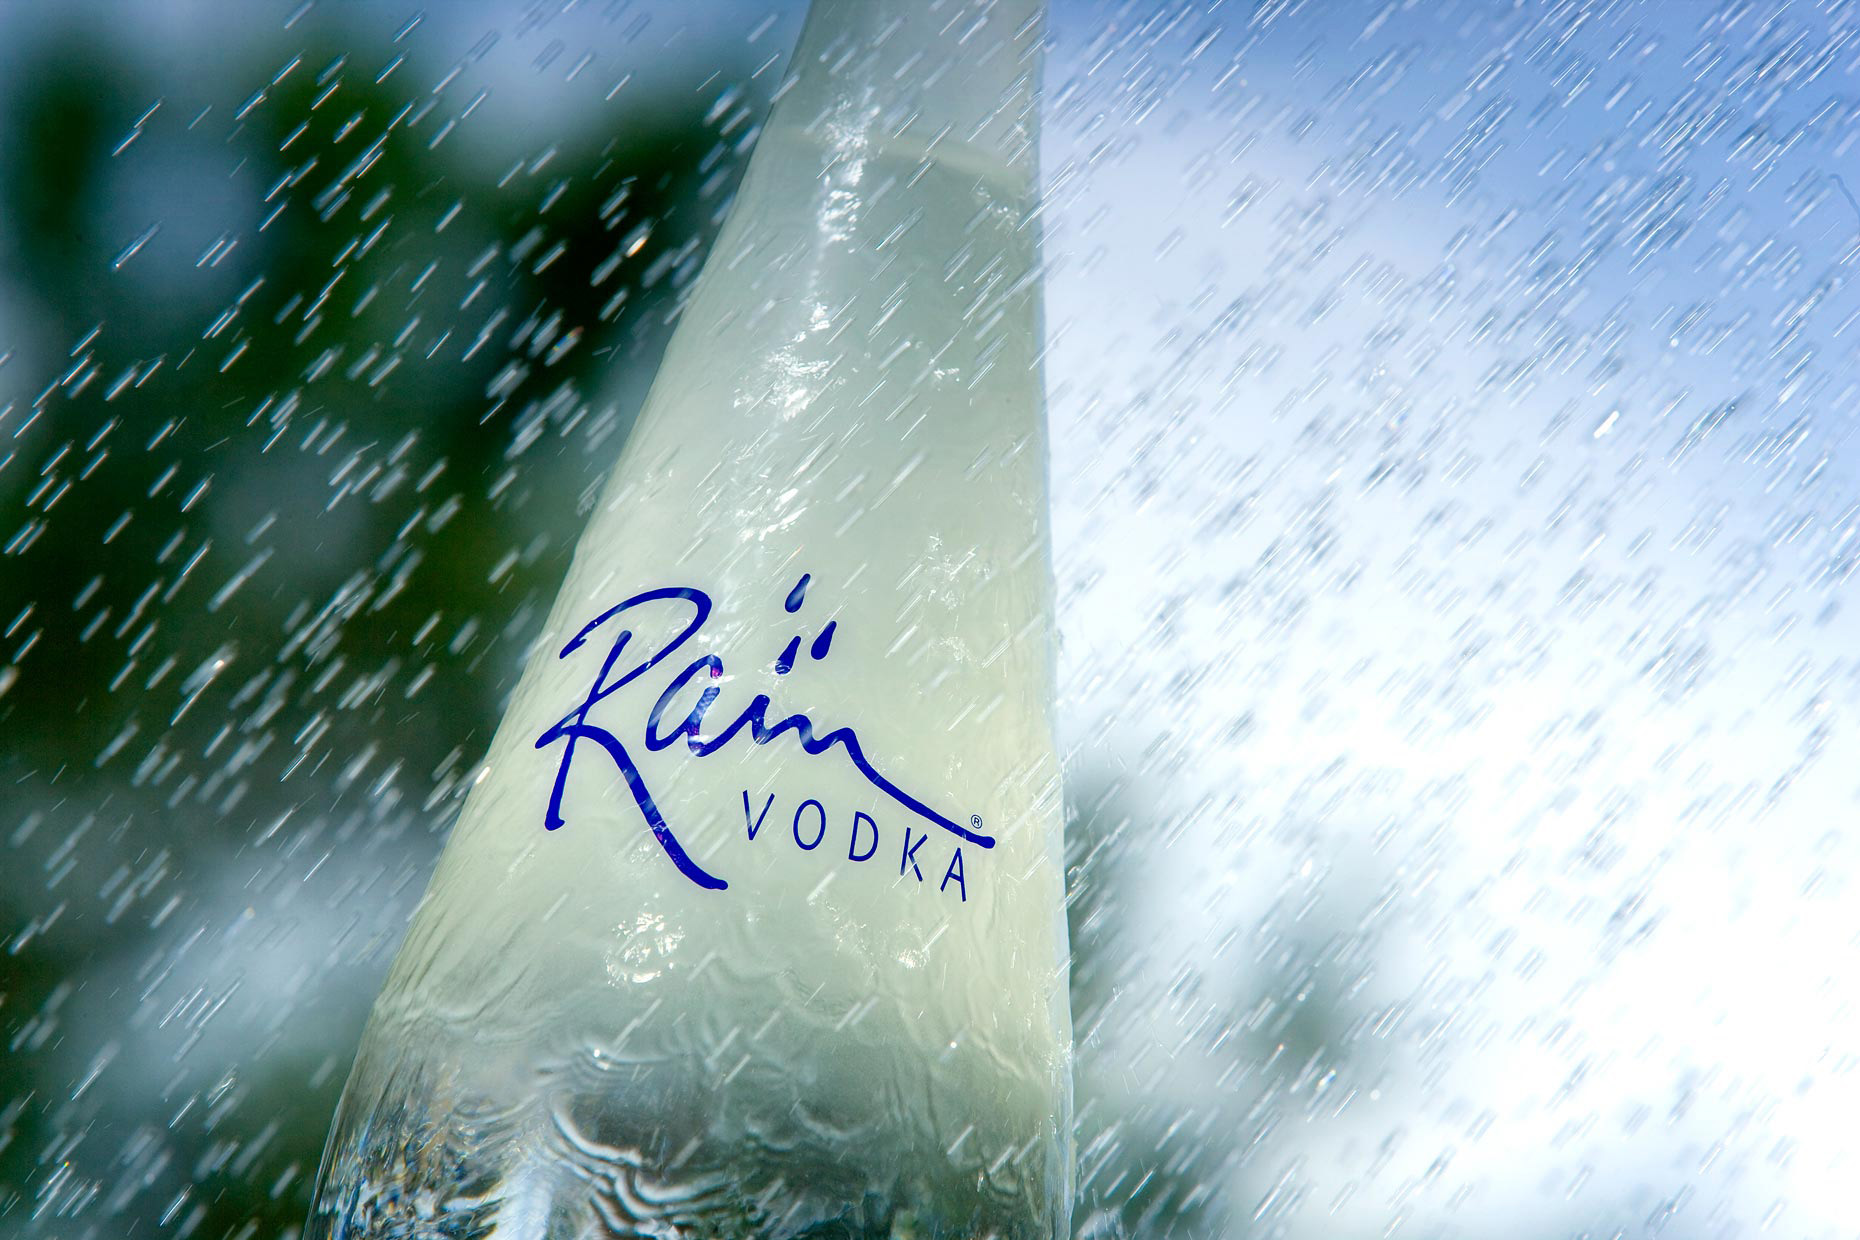 Beverage Photography | Rain Vodka